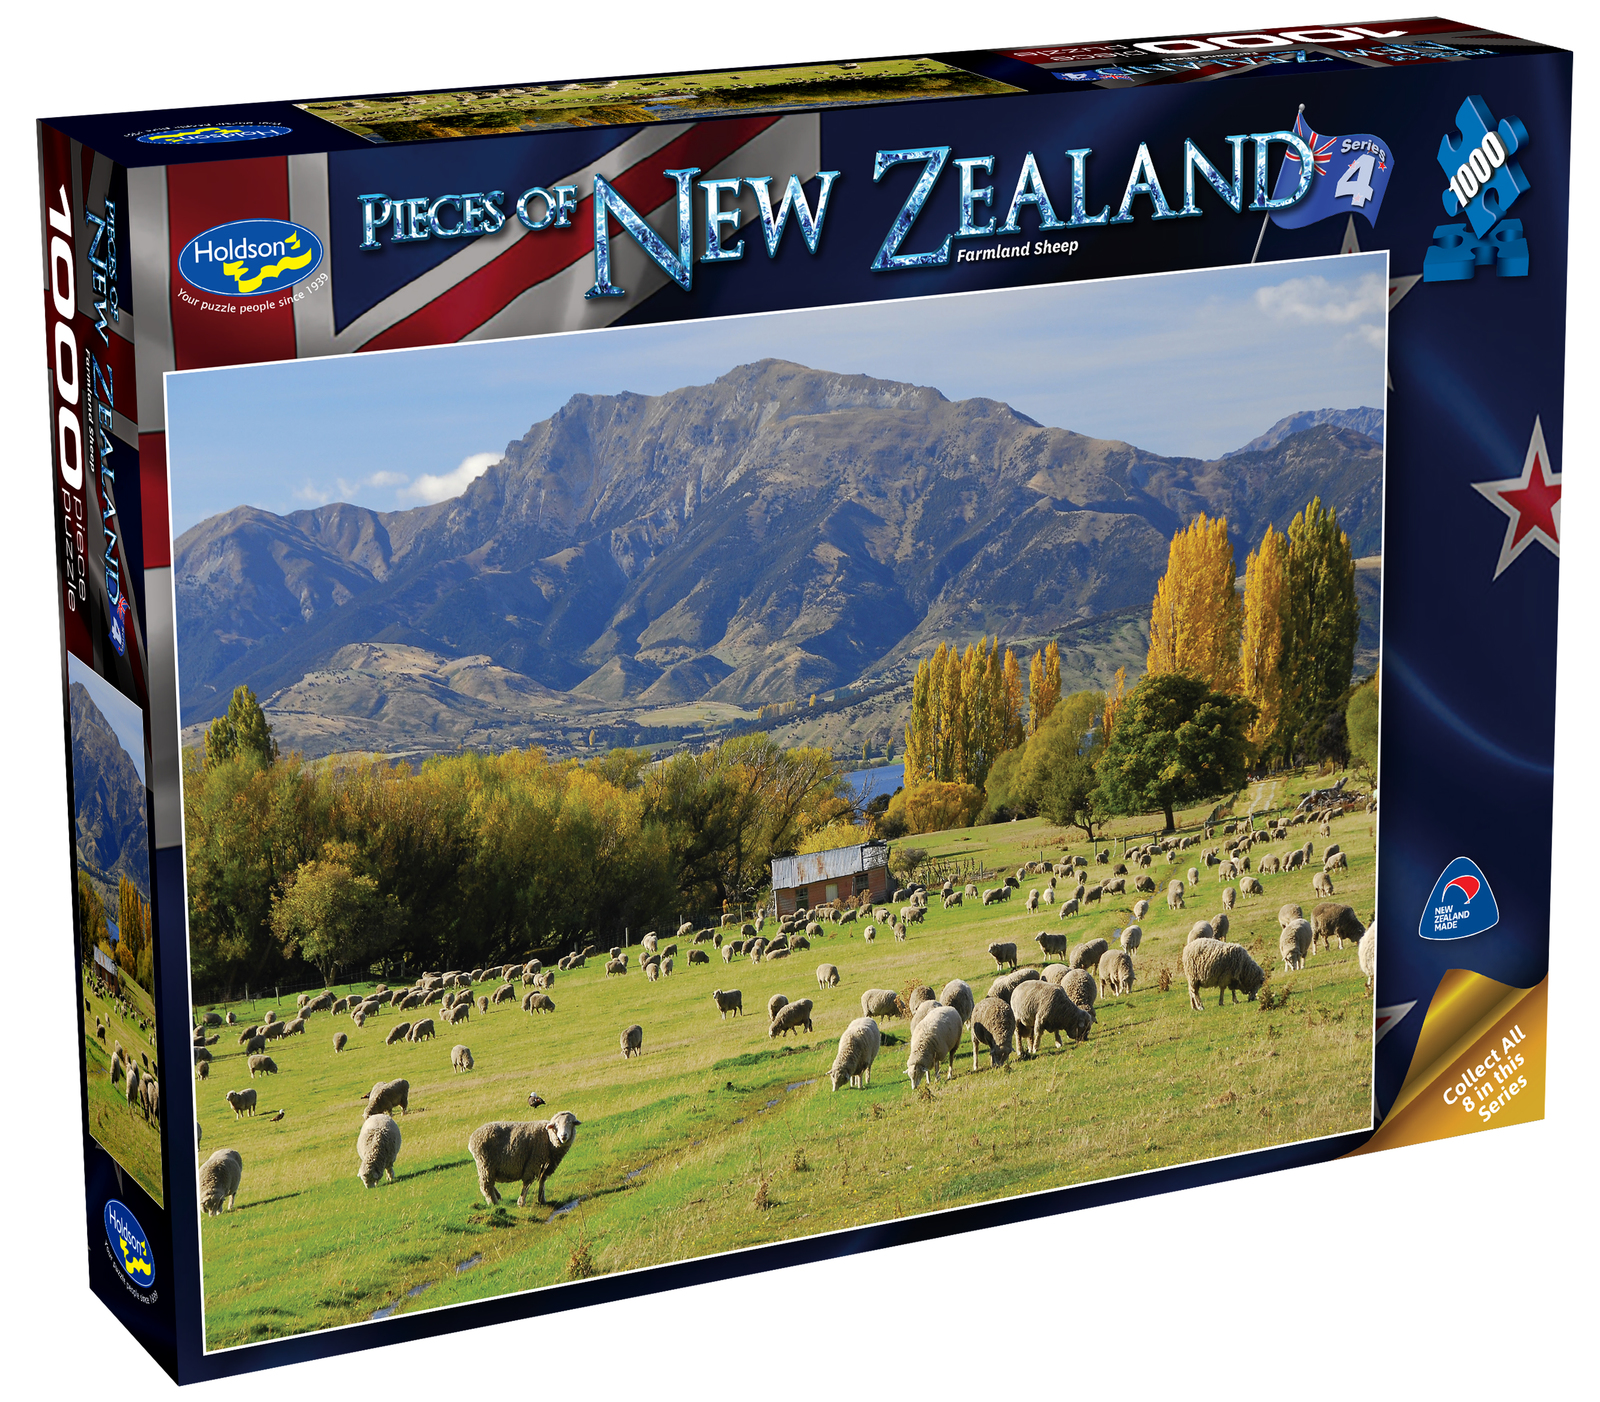 Holdson: Pieces of New Zealand - Series 4 - Farmland Sheep - 1000 Piece Puzzle image